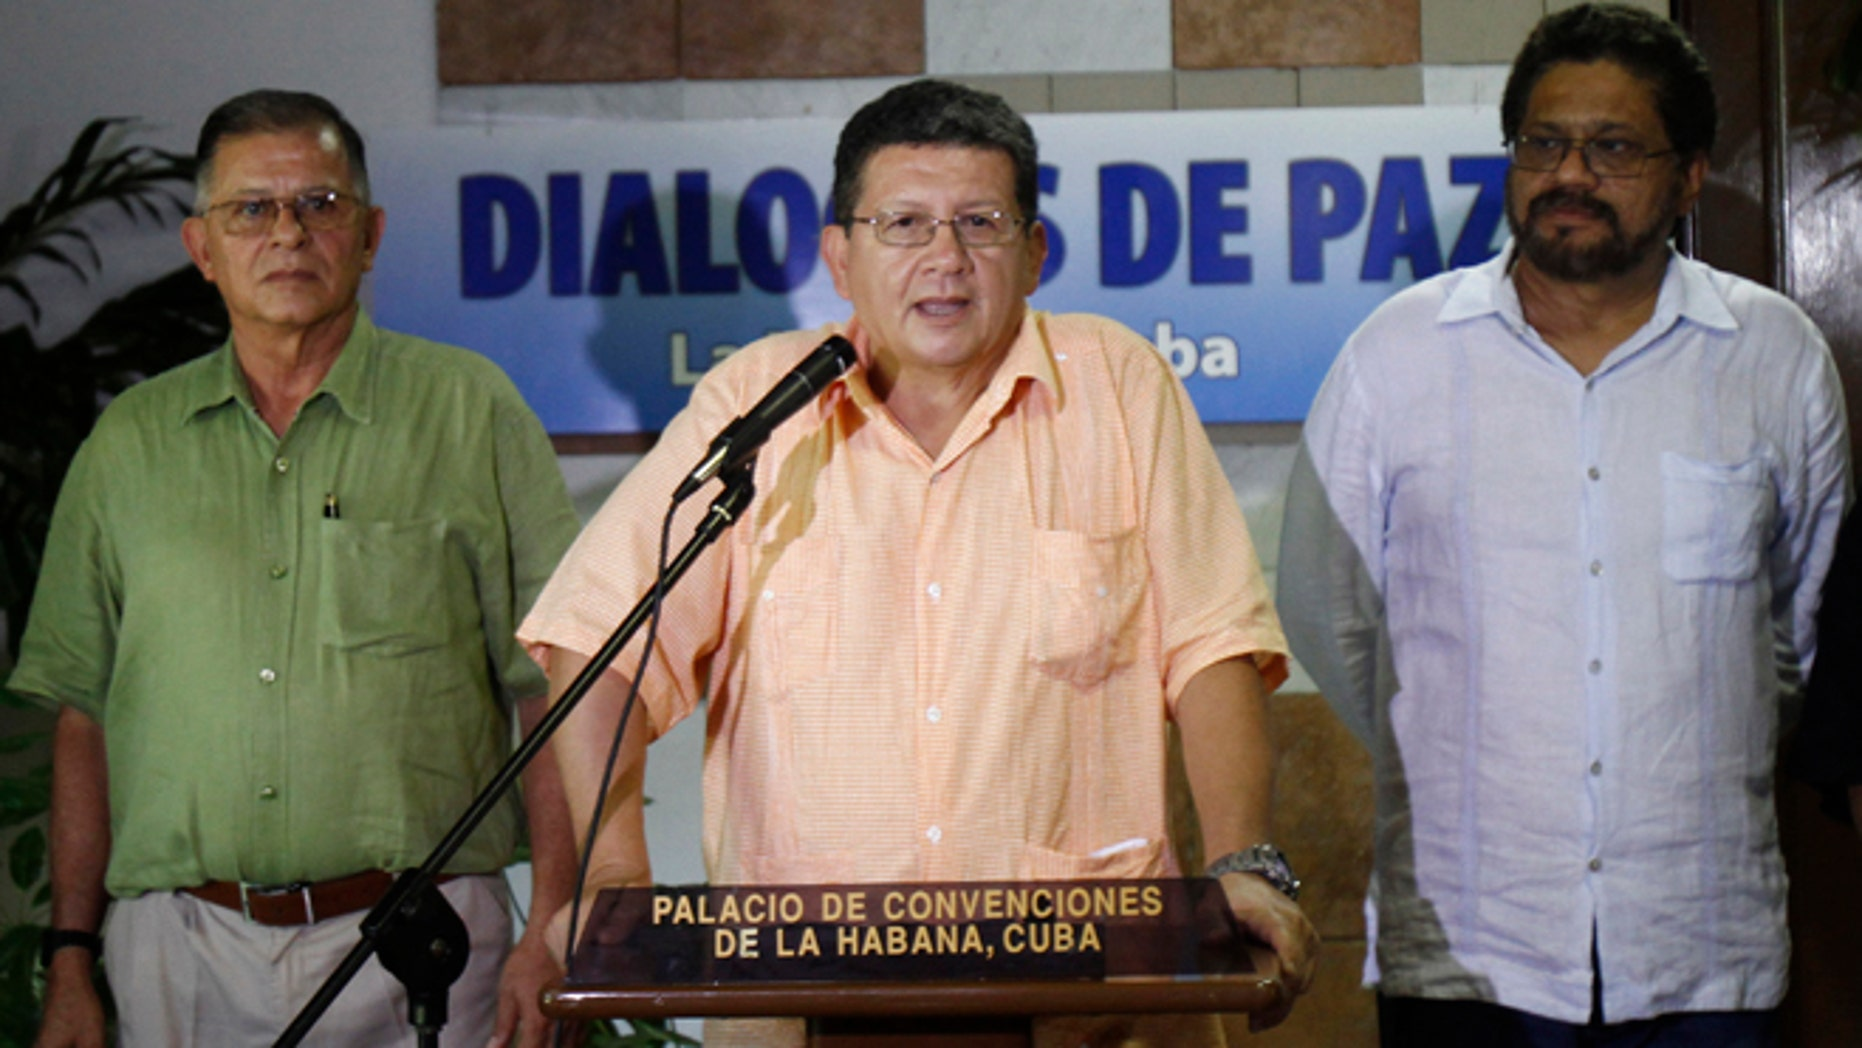 Pablo Catatumbo, chief of the western bloc of the Revolutionary Armed Forces of Colombia, or FARC, center, speaks to journalists accompanied by Ricardo Tellez, left, and Ivan Marquez, chief FARC negotiator during peace talks with Colombia's government in Havana, Cuba, Friday, Aug. 23, 2013. Colombia's largest guerrilla army temporarily walked away from peace talks with the government Friday over President Juan Manuel Santos' refusal to agree to modify the constitution if a peace pact is struck. (AP Photo/Ismael Francisco, Cubadebate)